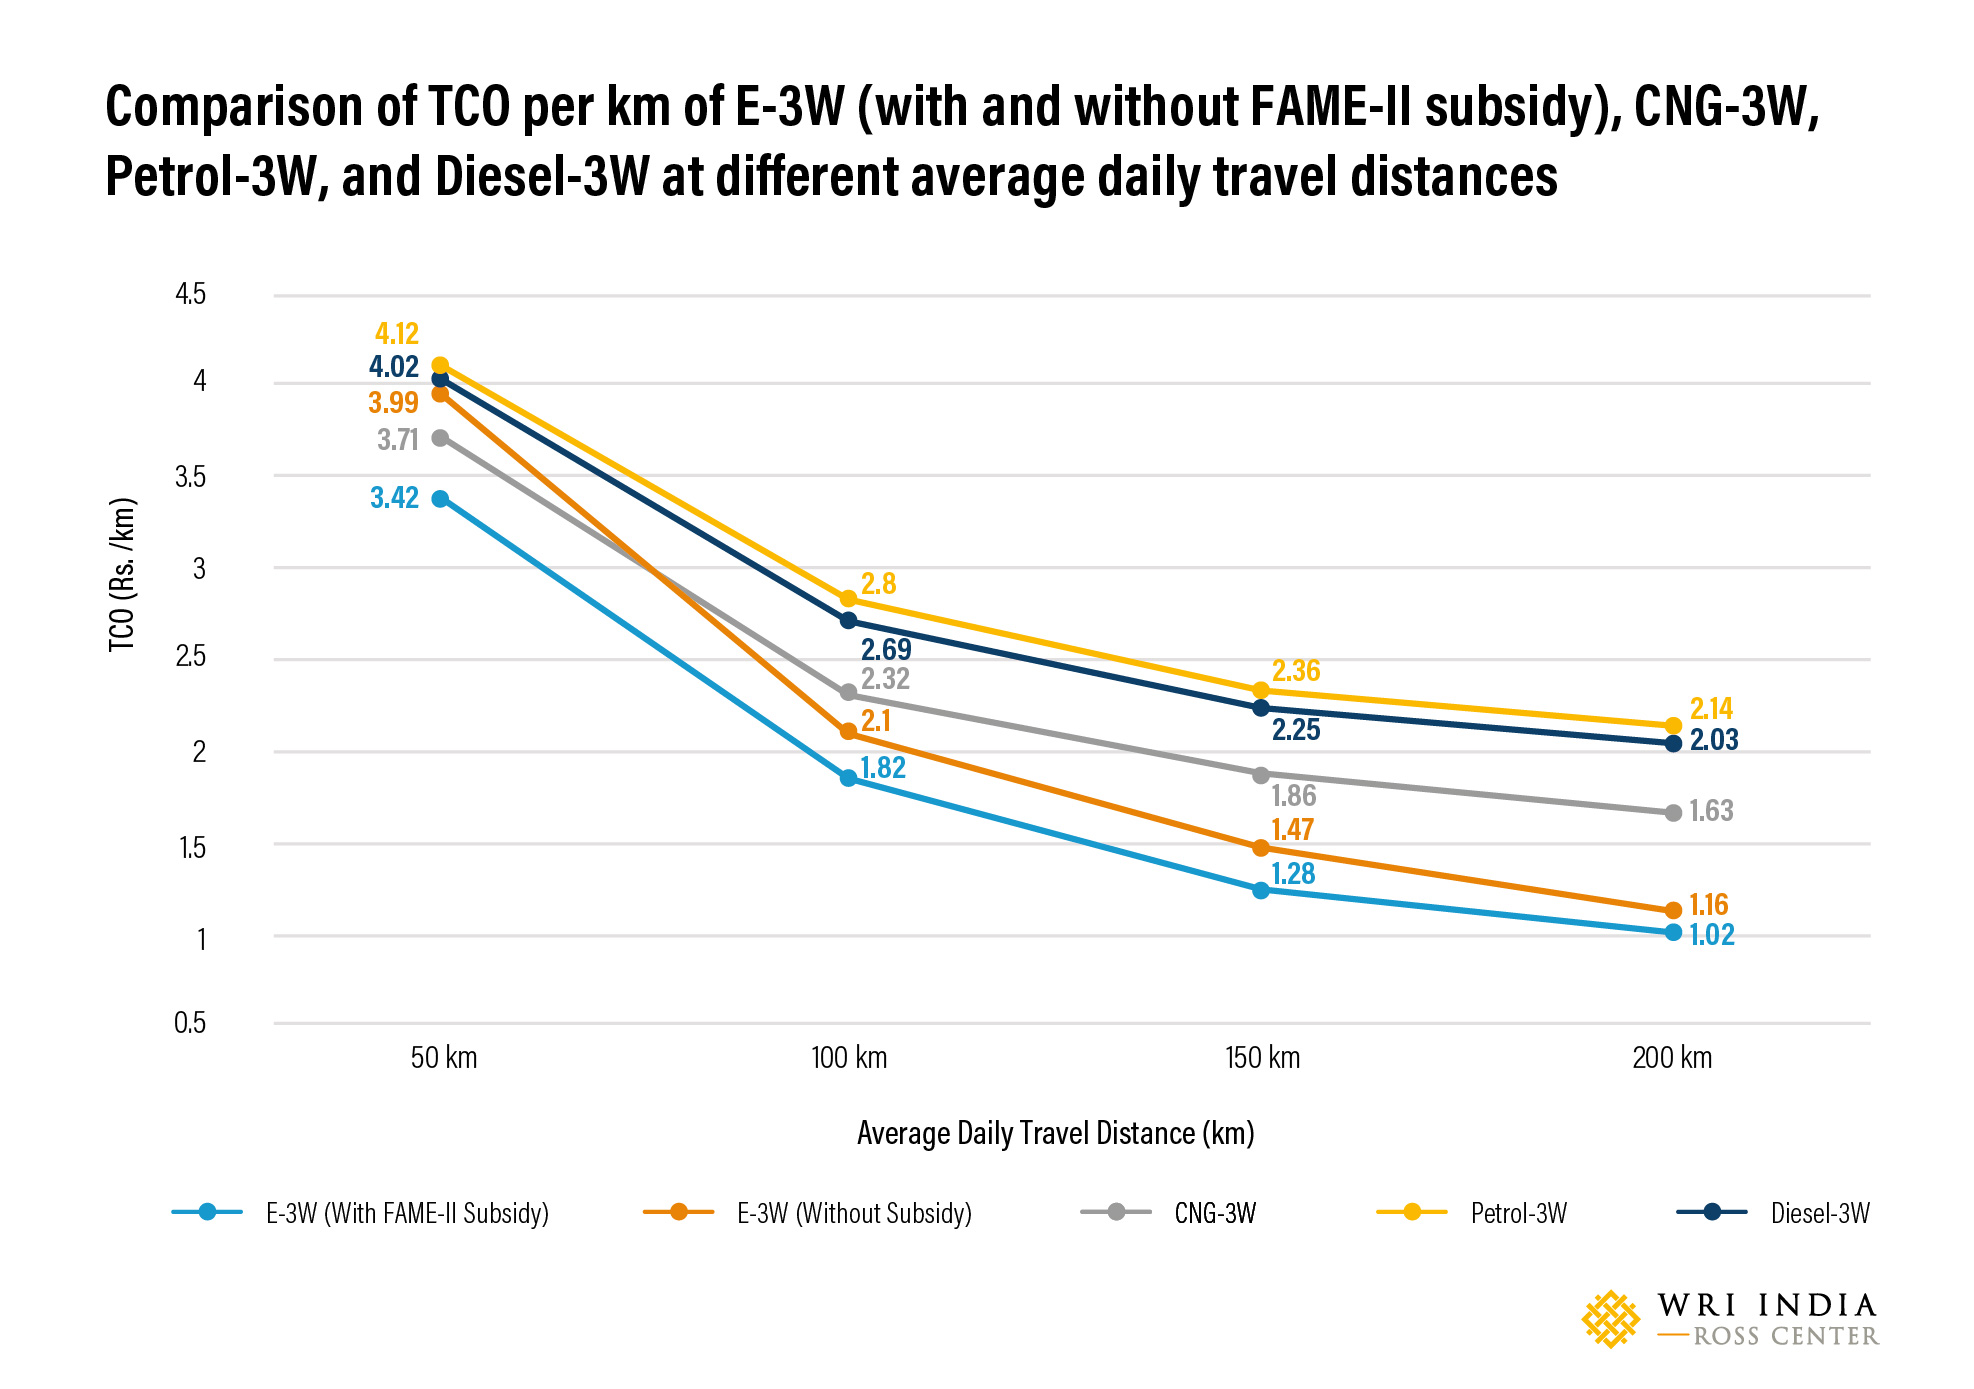 Comparison of TCO per km of e-3W (with and without FAME-II subsidy), CNG-3W, Petrol-3W, and Diesel-3W at different average daily travel distances.